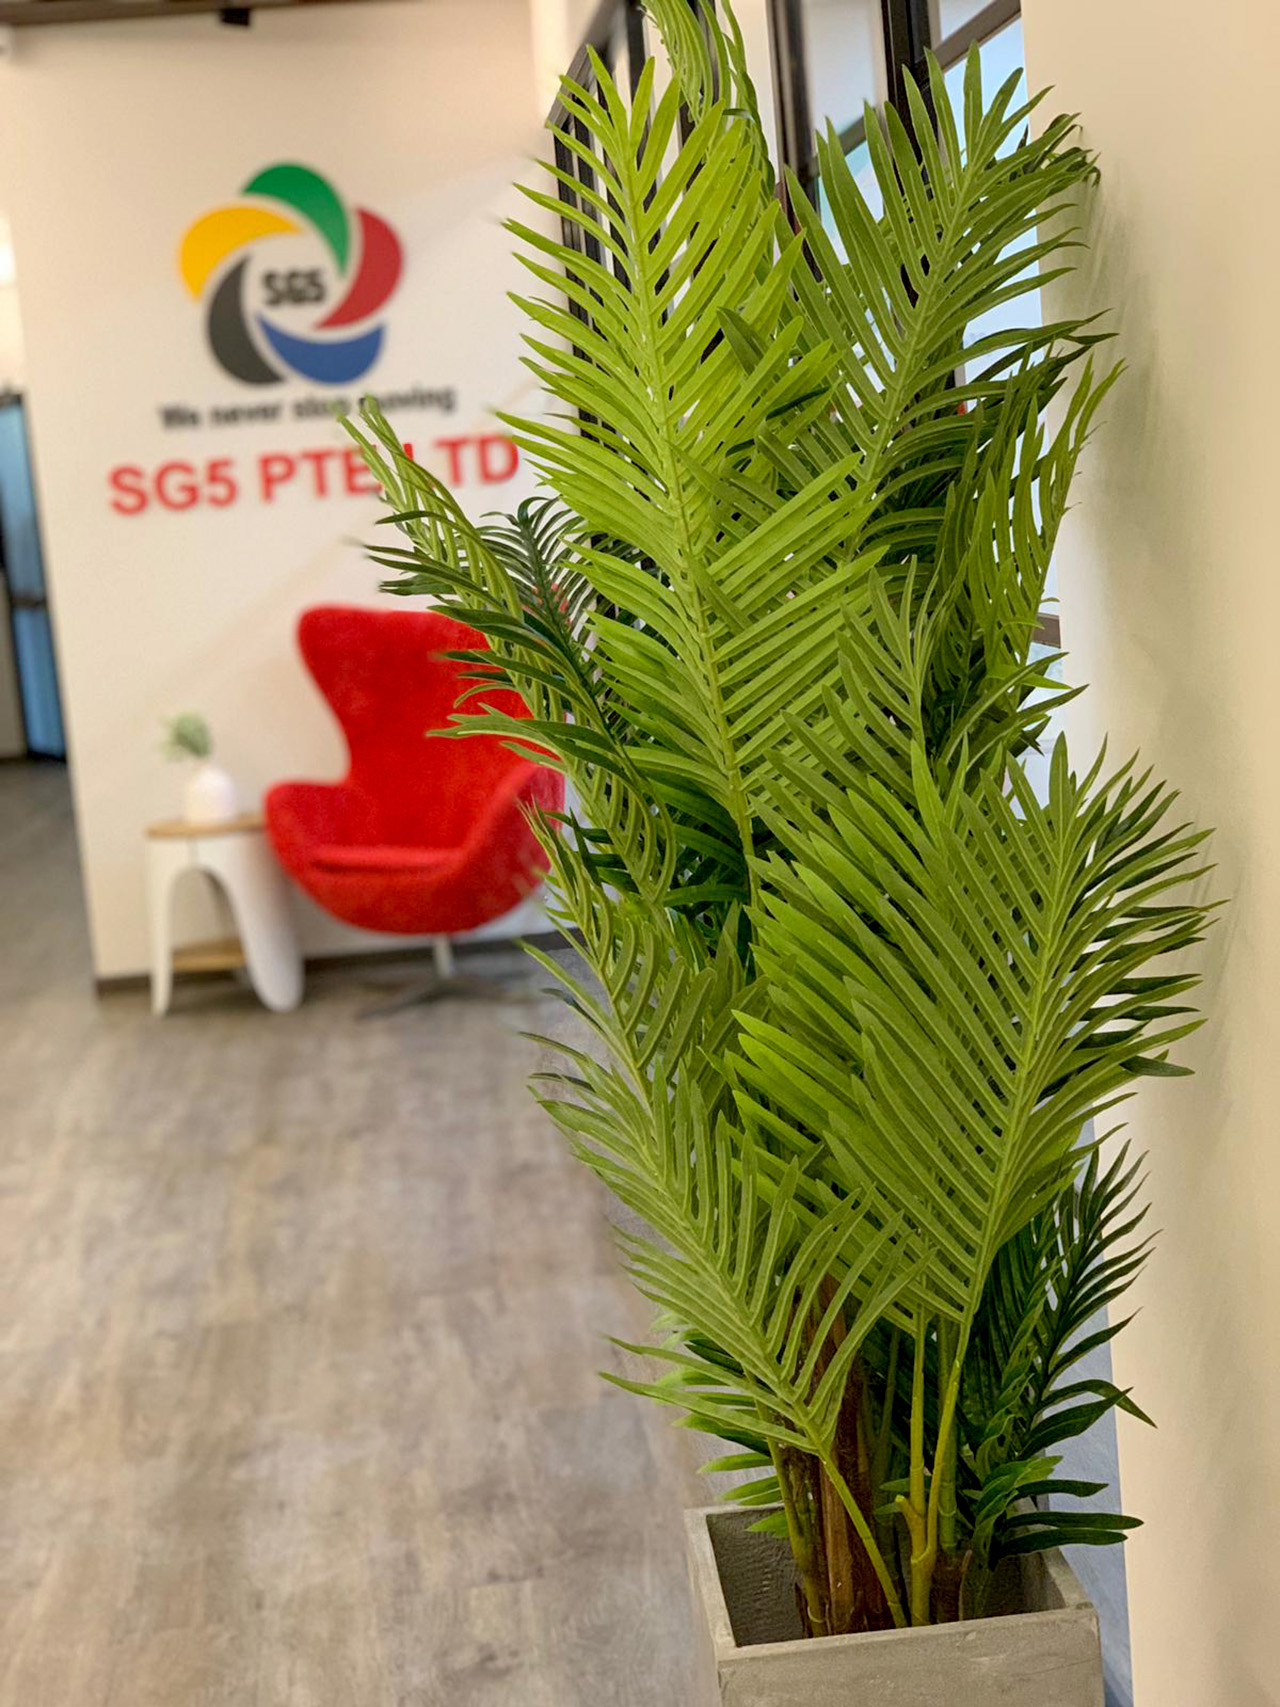 SG5 Pte Ltd - Changi South | Product seen: [Tree - Hawaii Palm H1700]